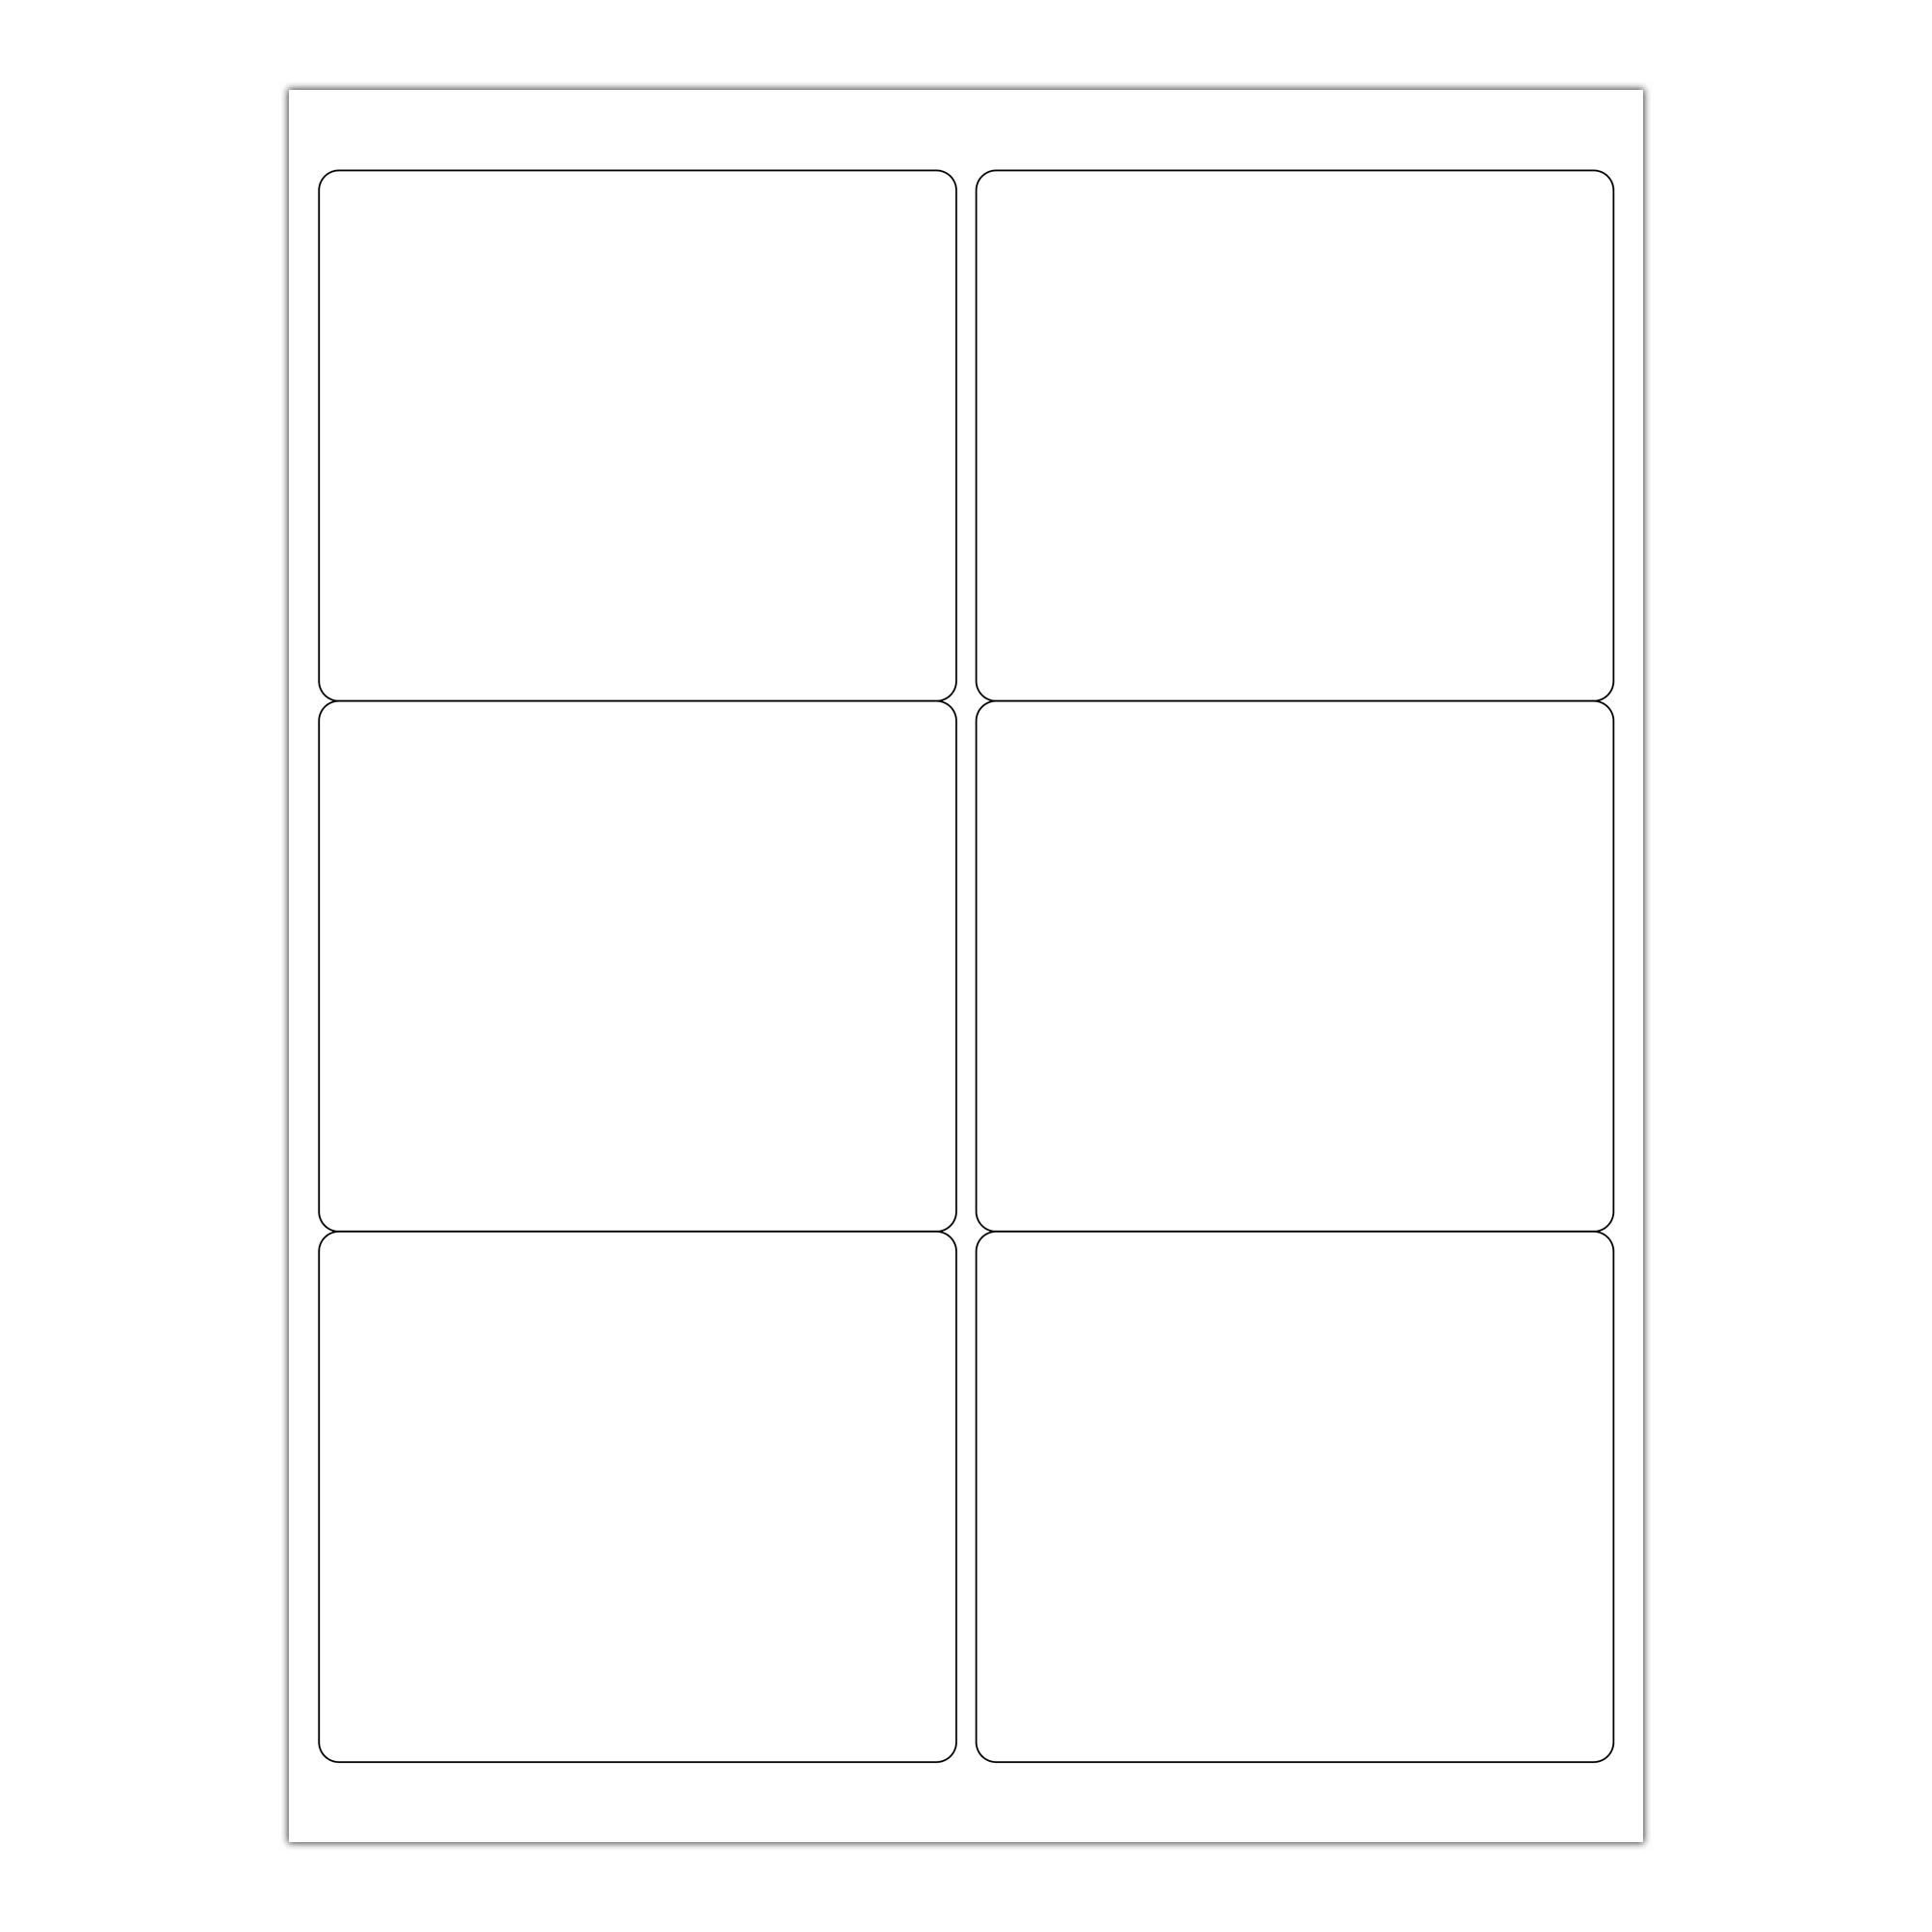 ChromaLabel 3-1/3 x 4 Inch Printable Labels, Compatible with Laser and Inkjet Printers, 150 Pack, 25 Sheets, White